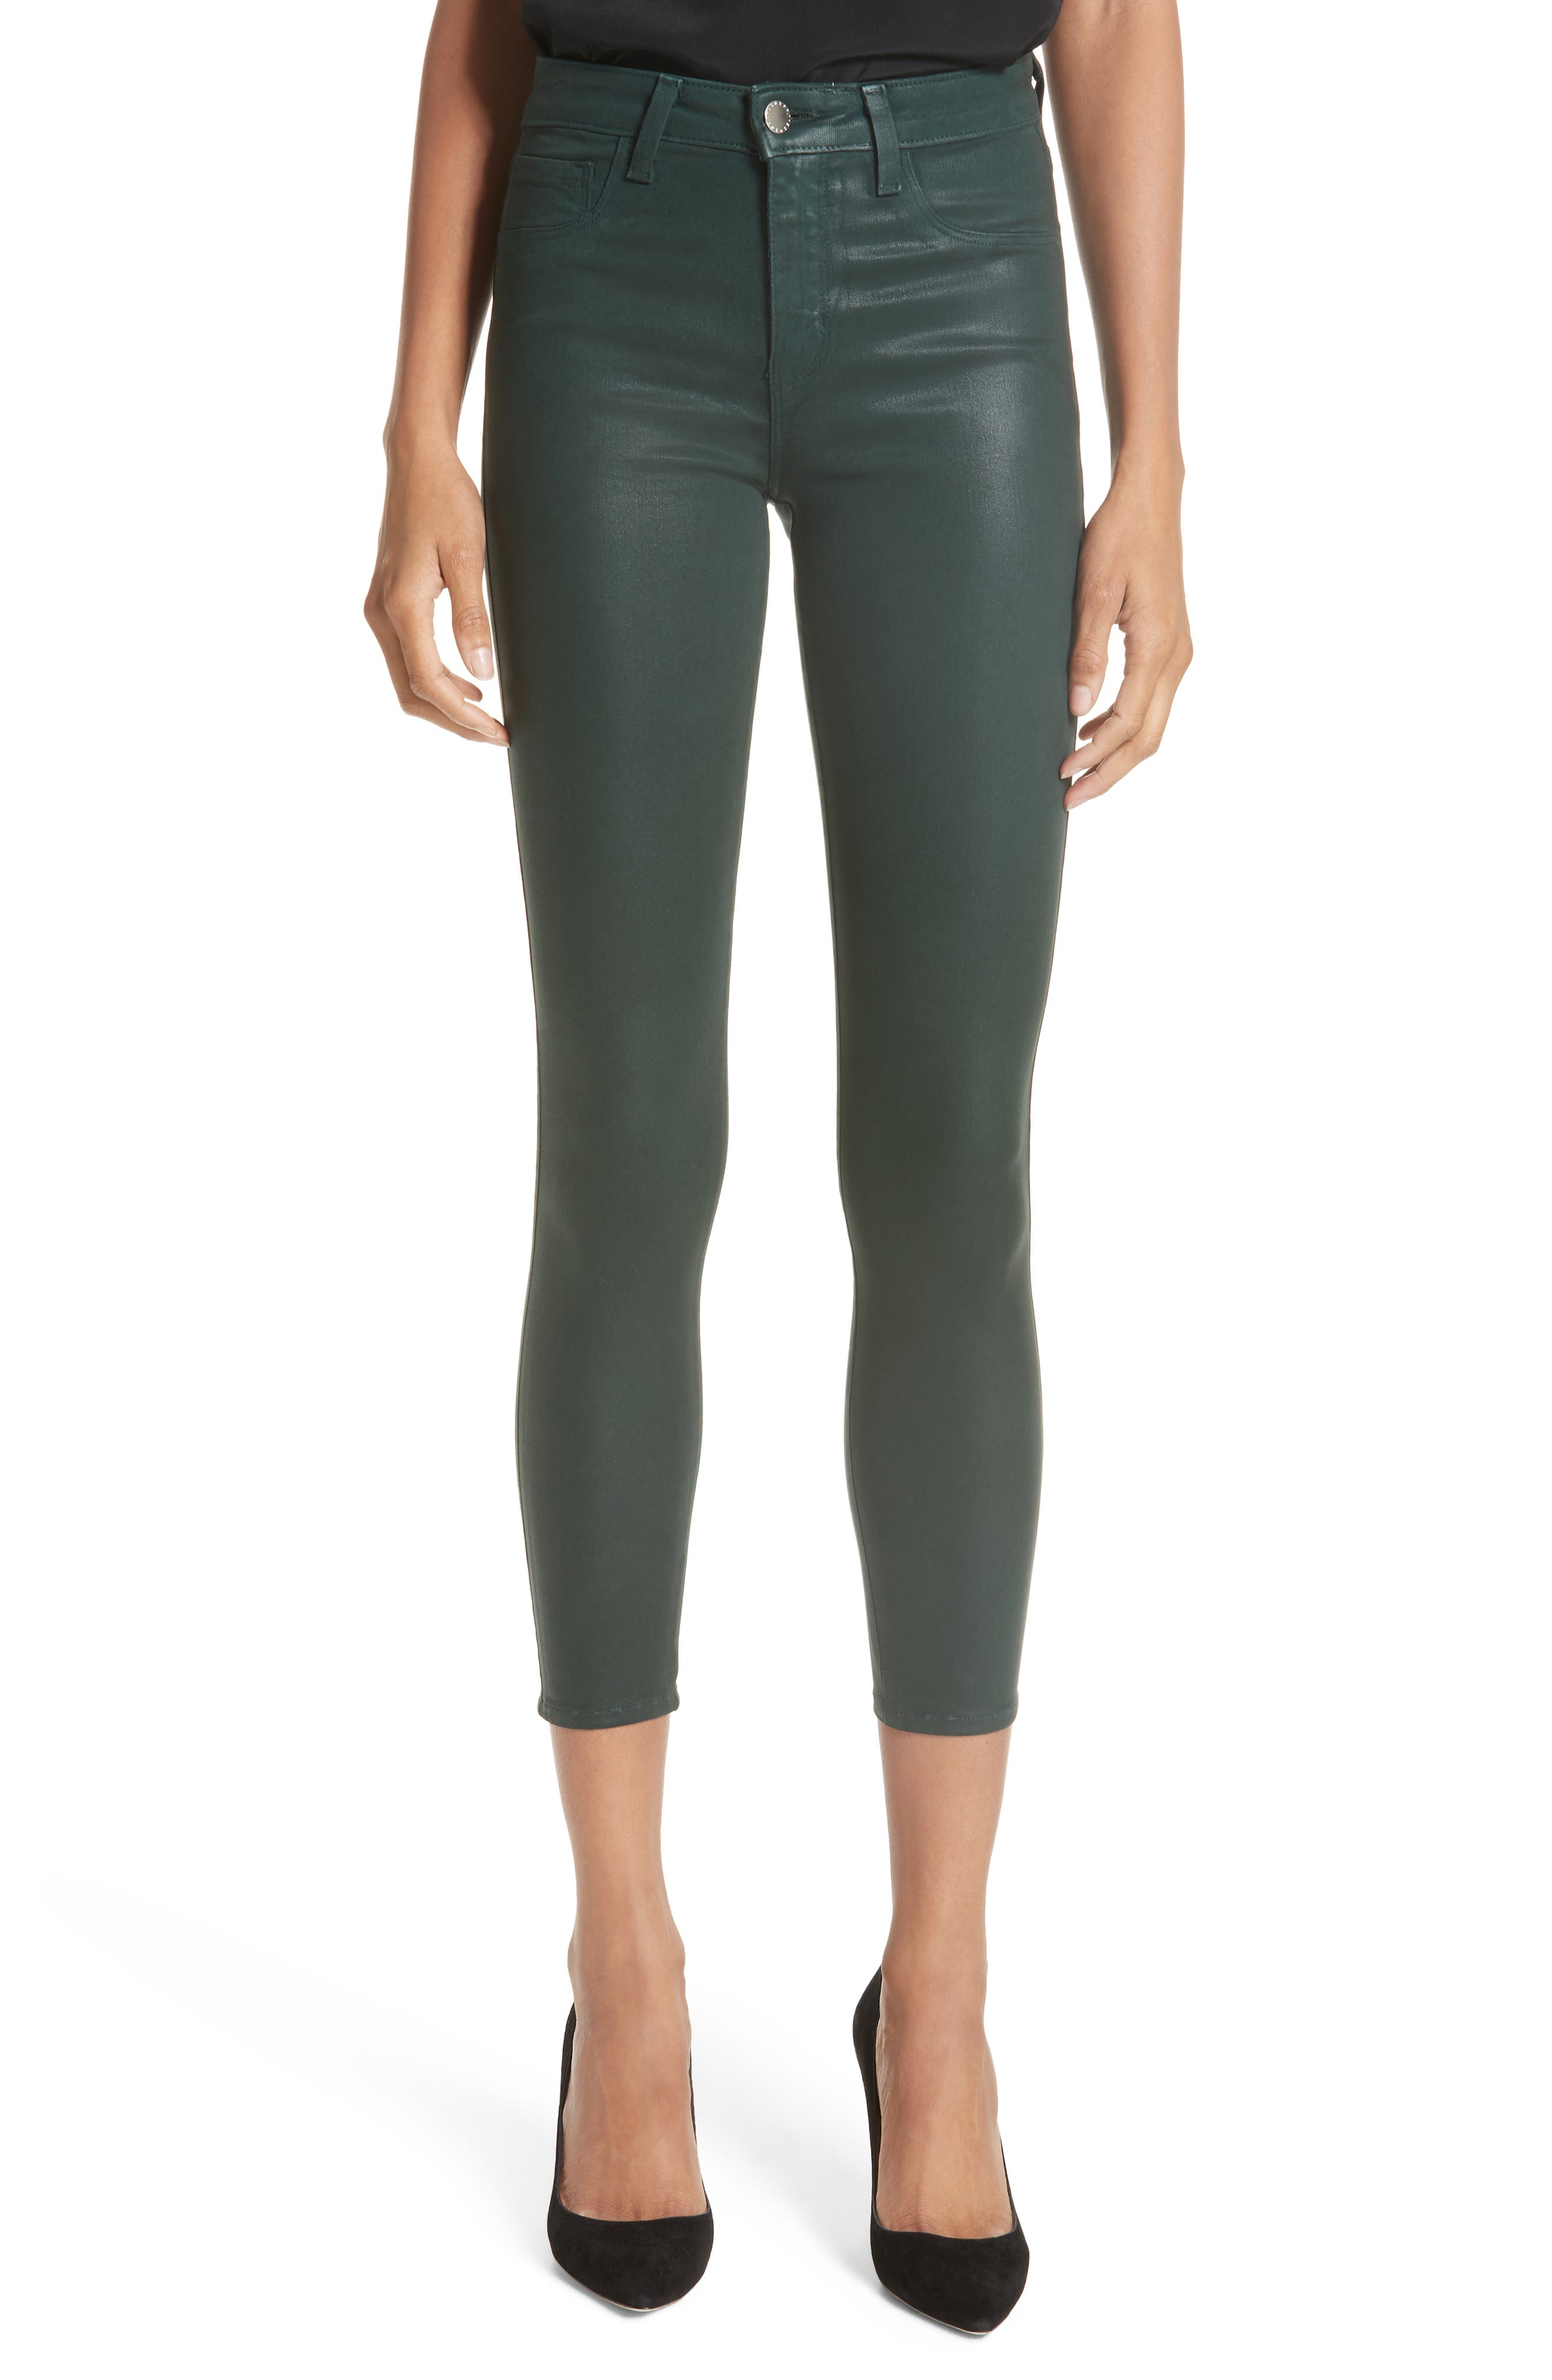 L'AGENCE Margot Coated Crop Skinny Jeans, Main, color, EVERGREEN COATED